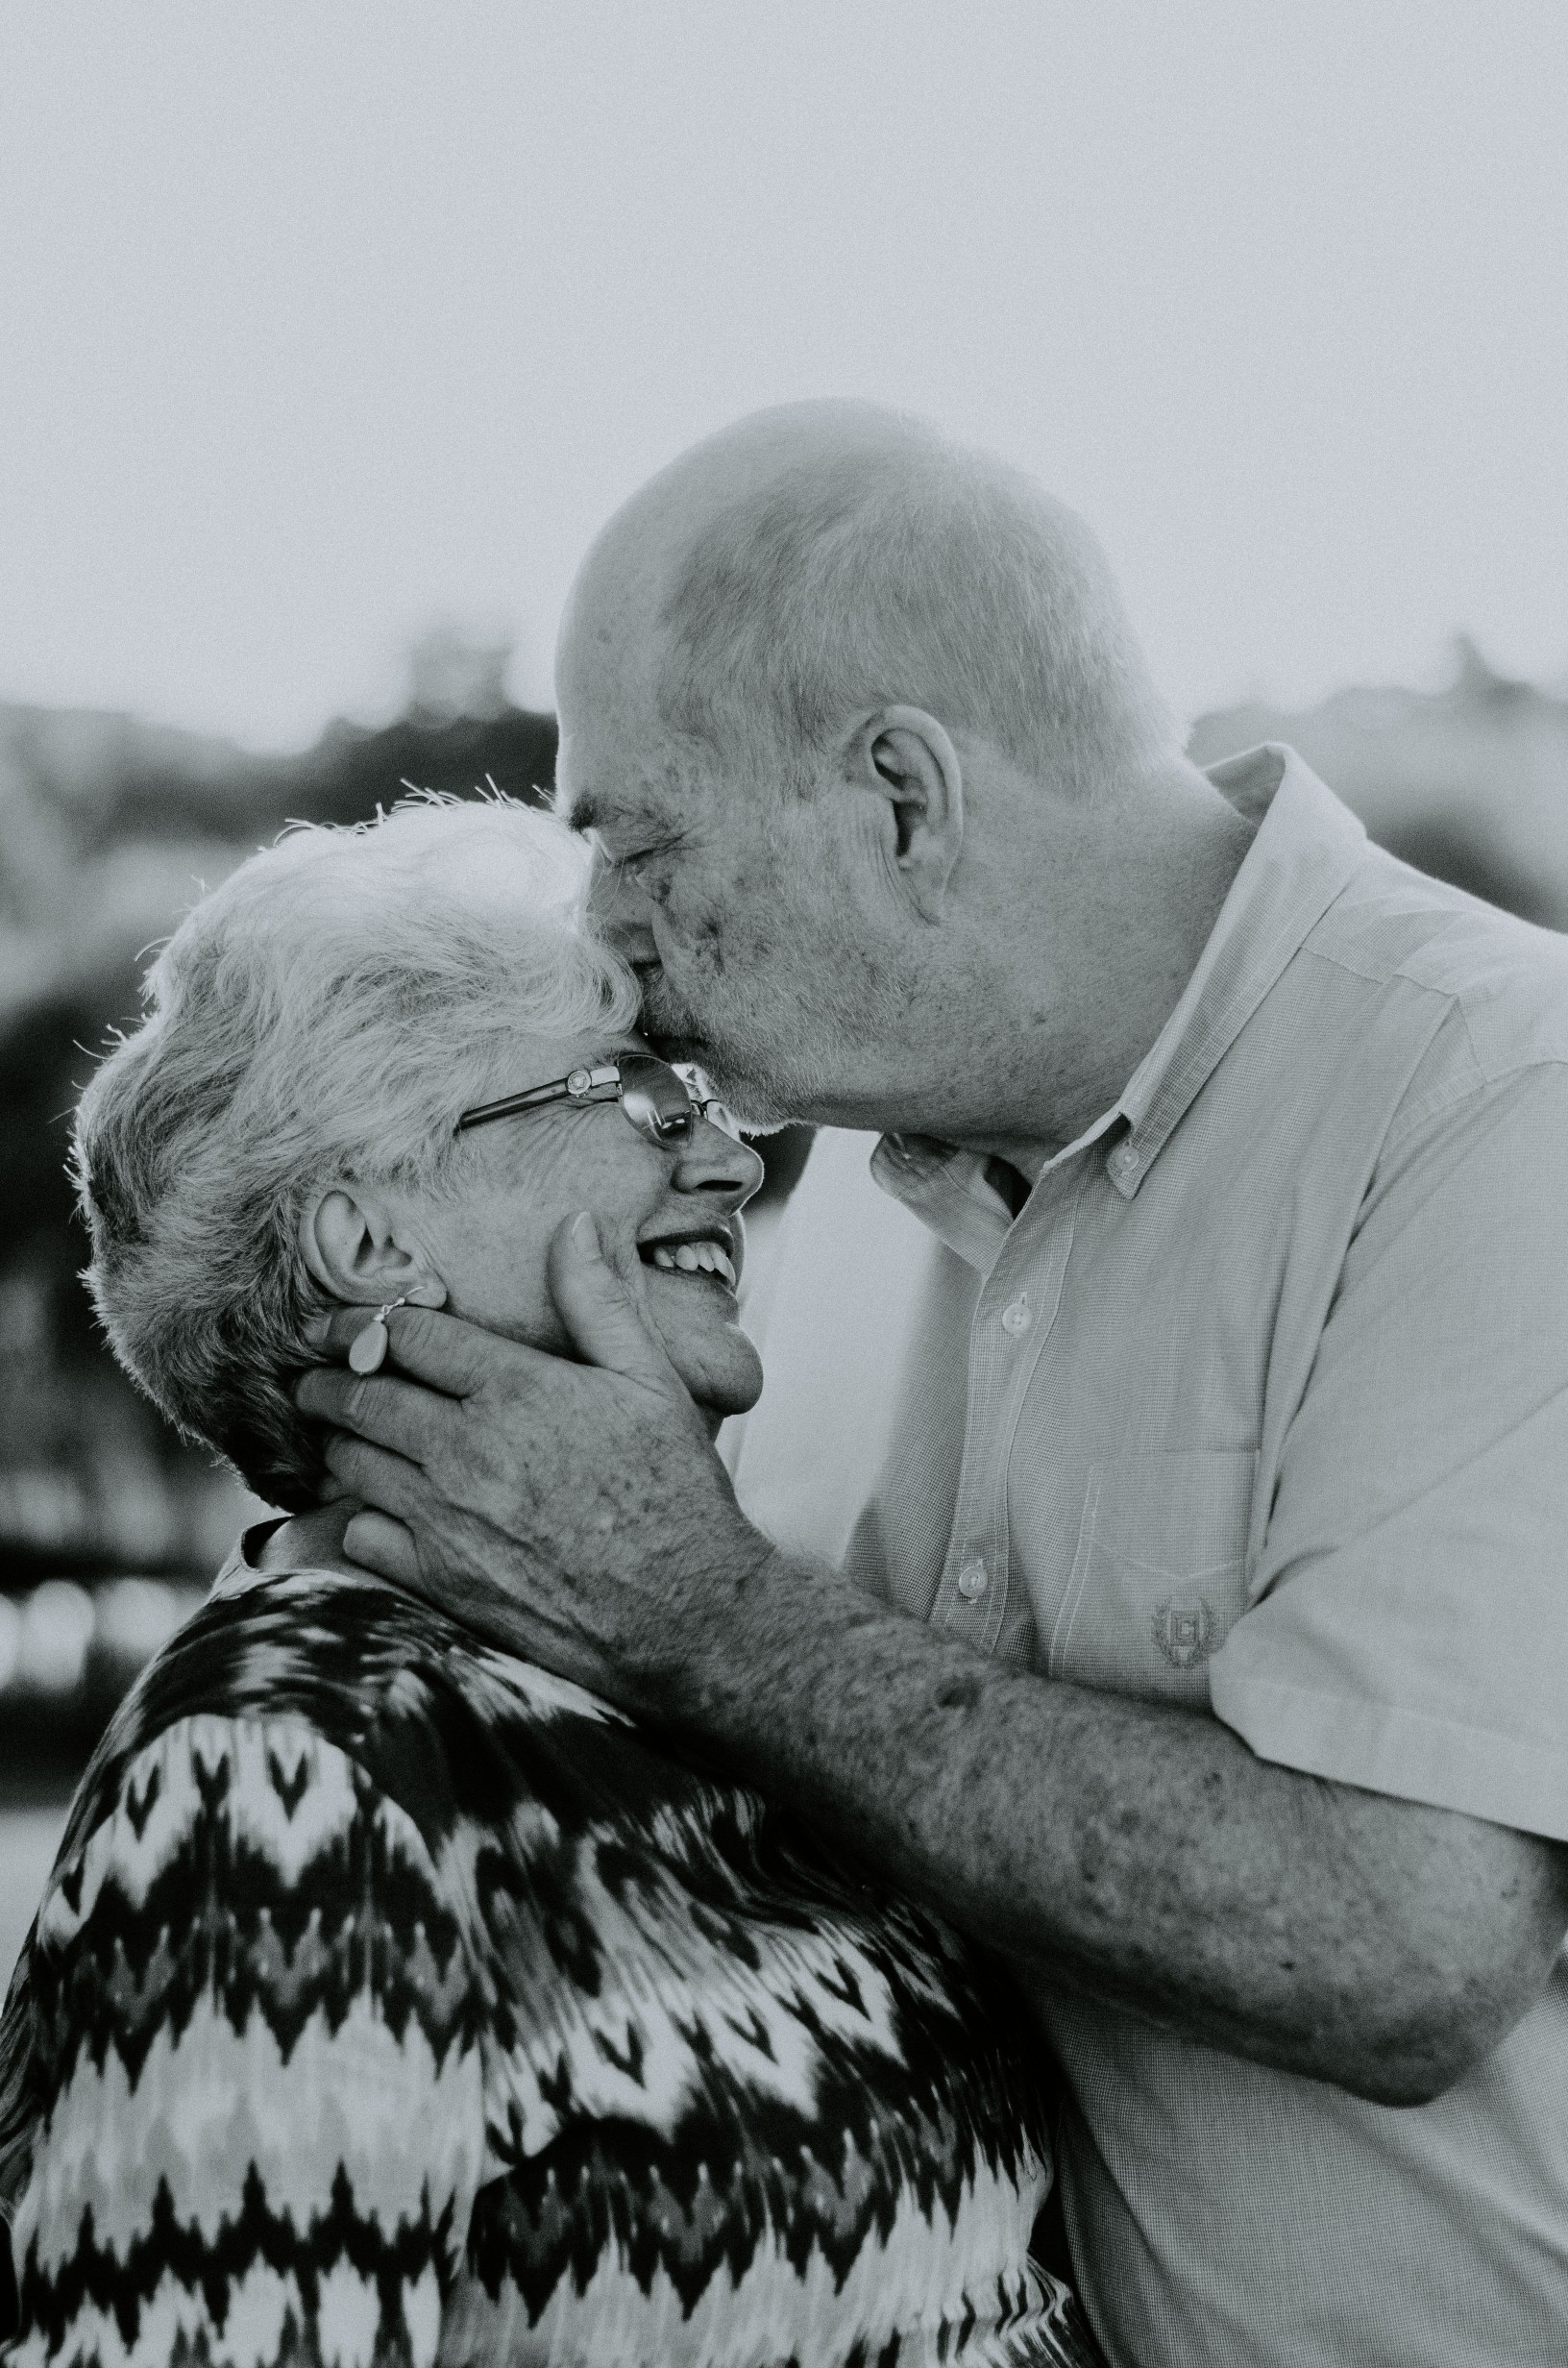 couple-portrait-photography.jpg.